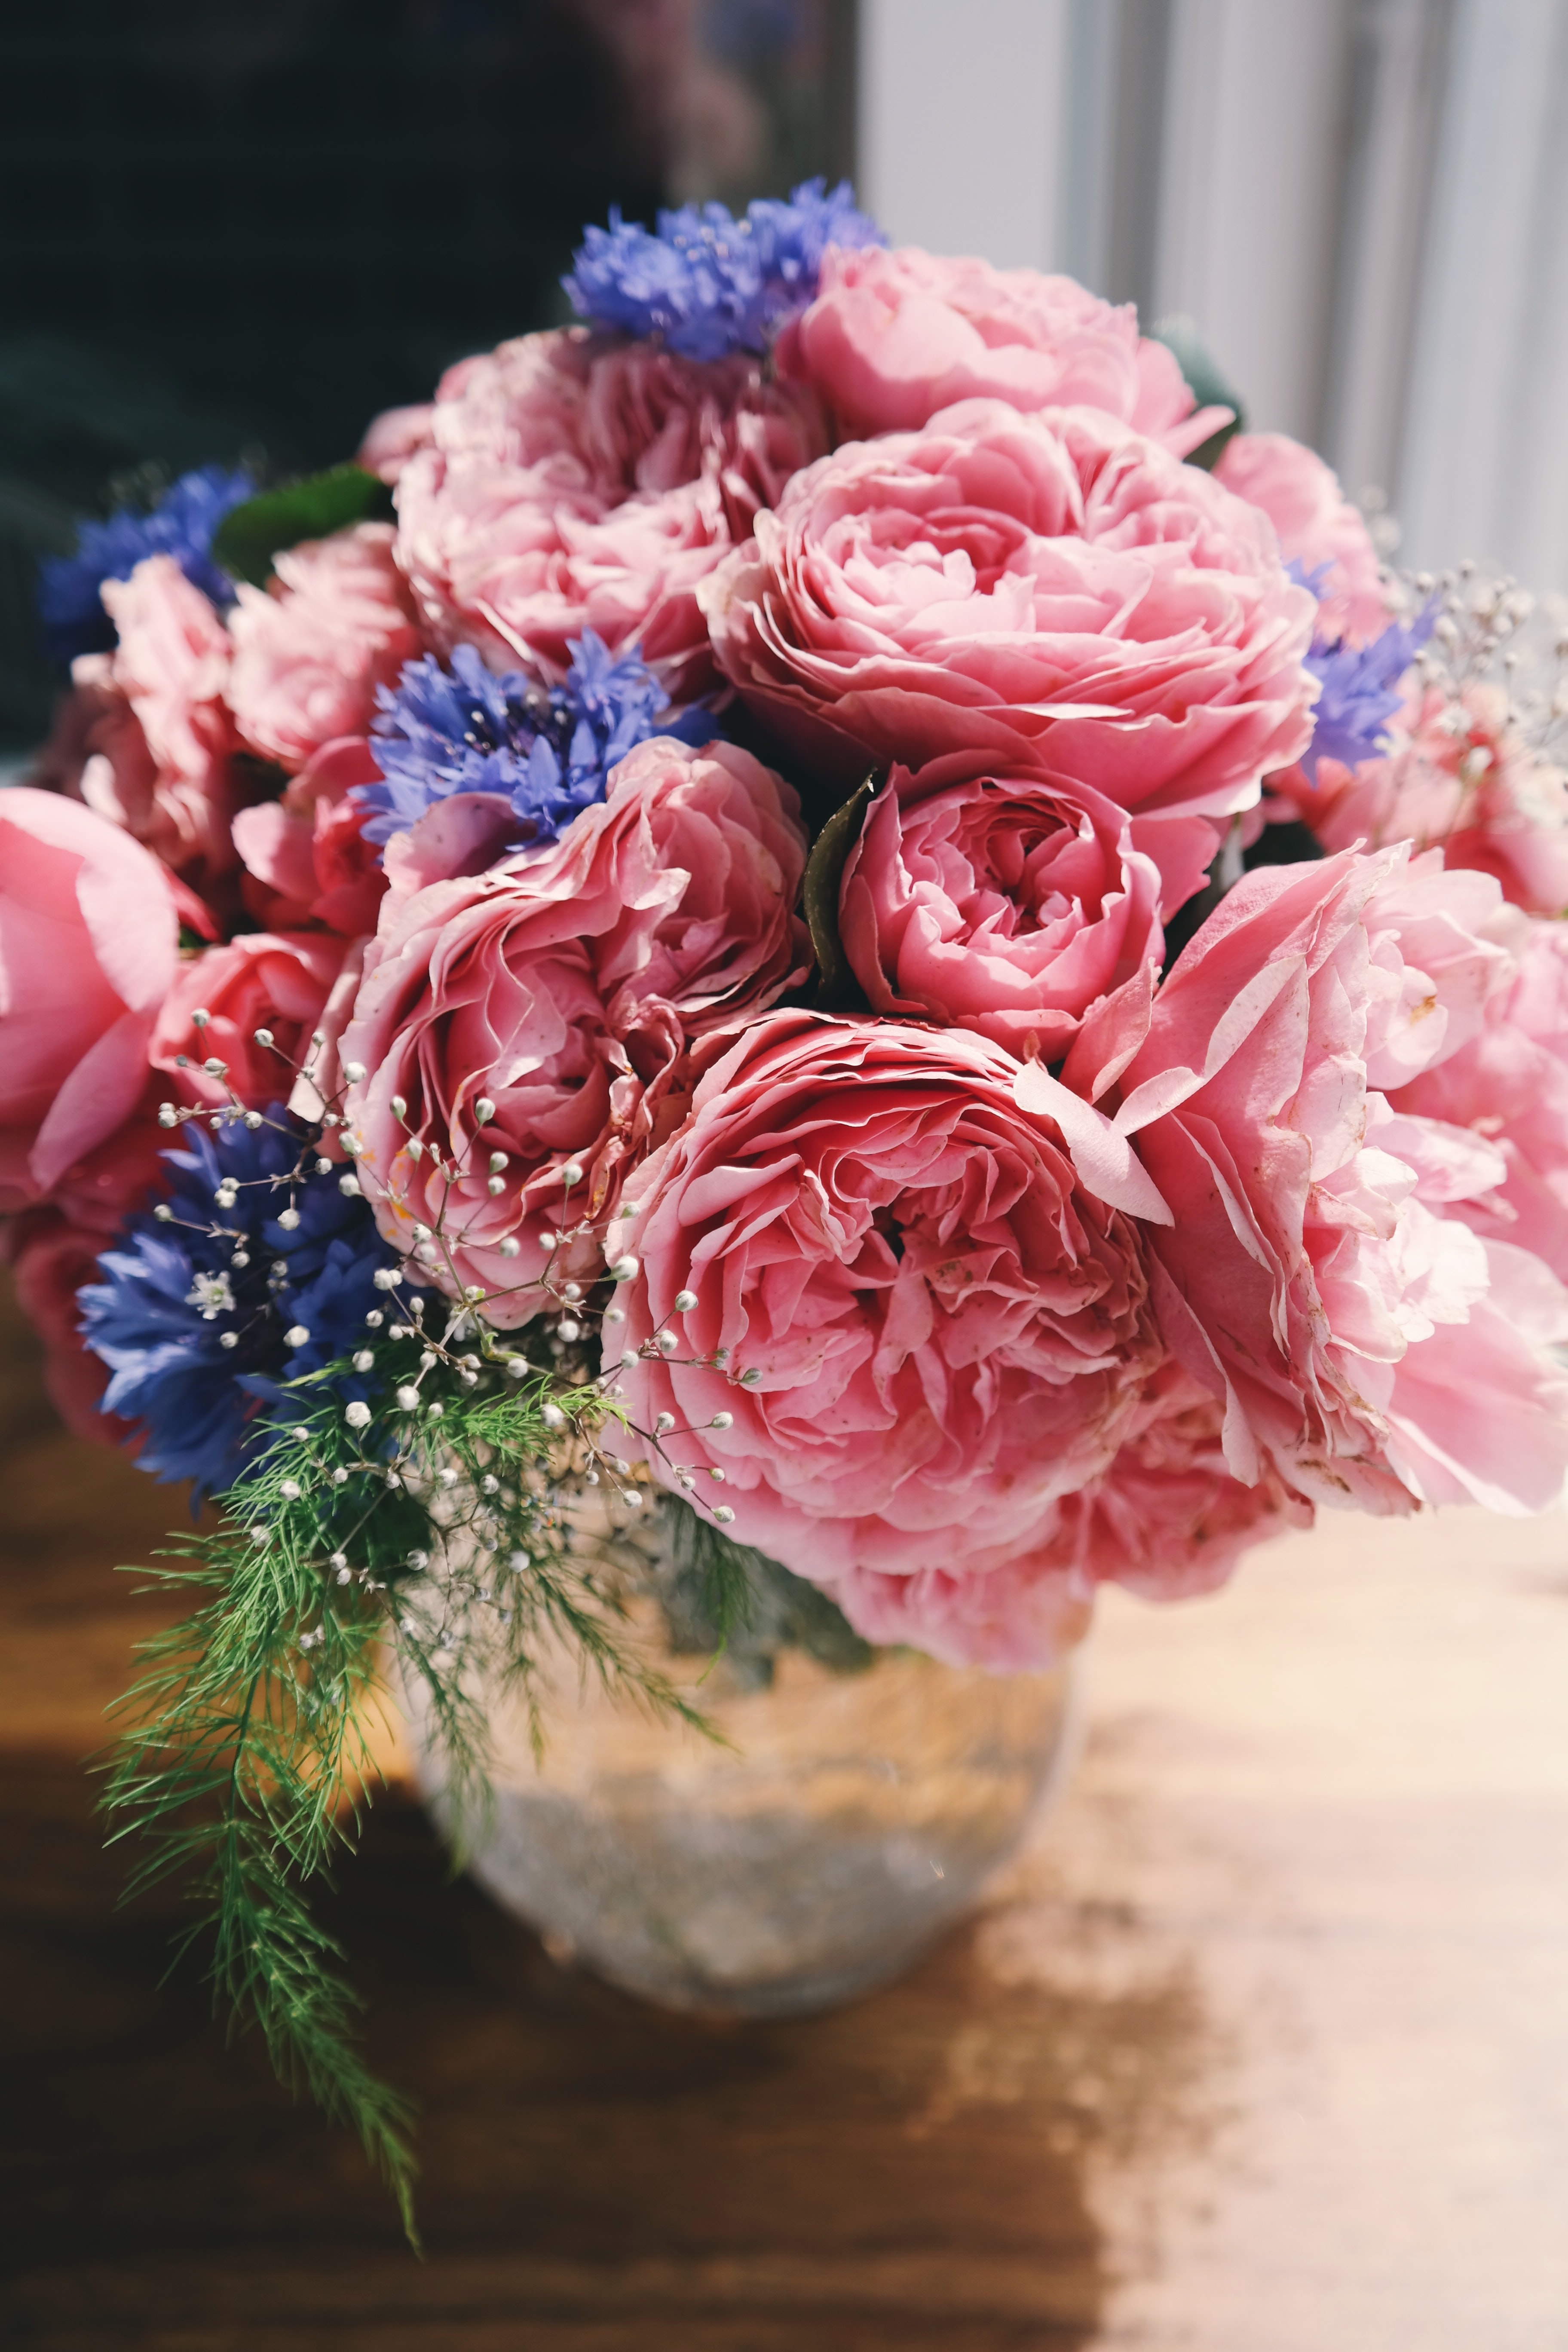 World hd images free download lovely flower